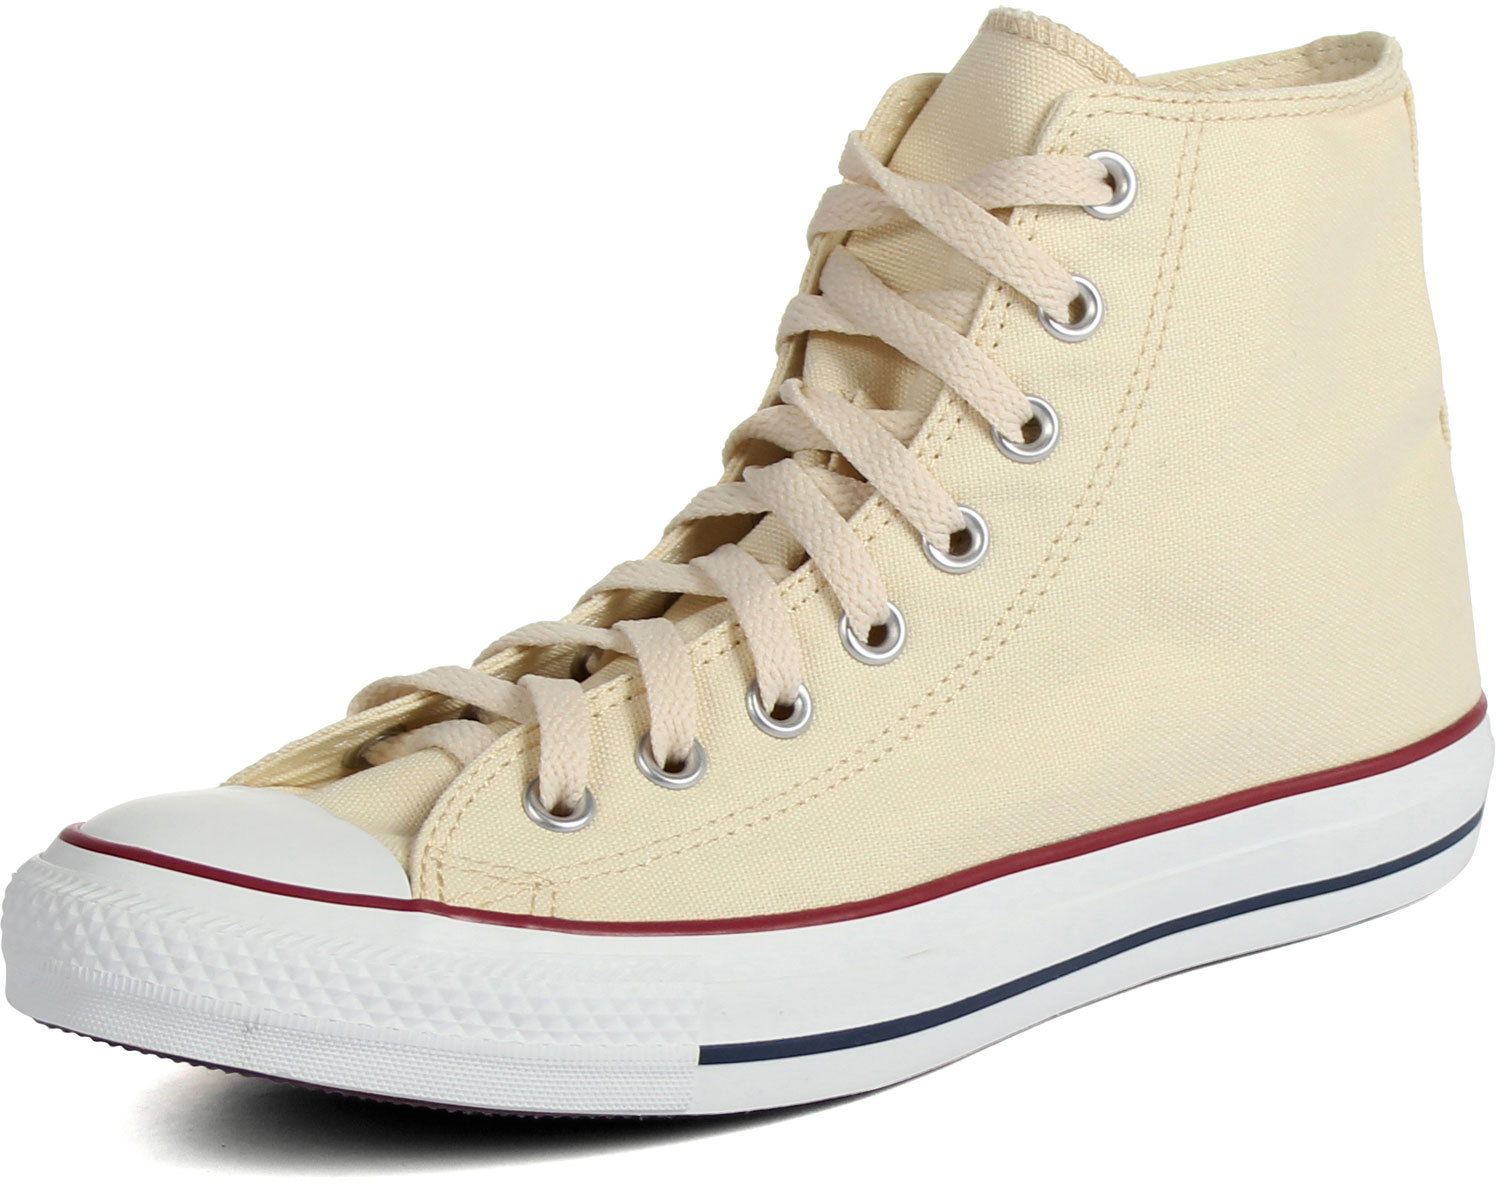 0b5e2027 Converse Chuck Taylor All Star Shoes (M9162) Hi top in White